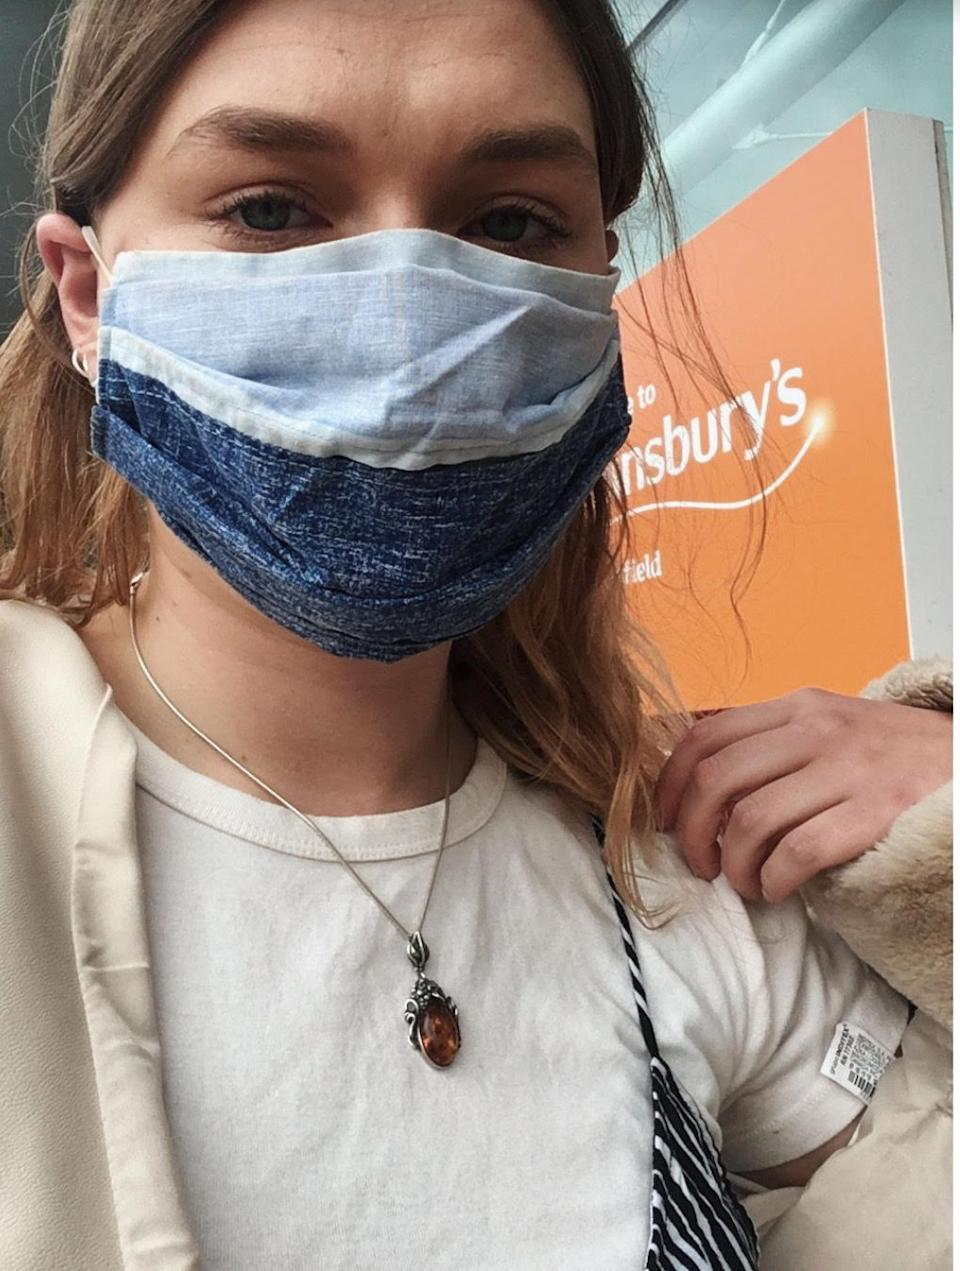 Student Mollie Simpson says a tier 3 lockdown without additional support could have dire consequences (Photo: Supplied: Mollie Simpson)